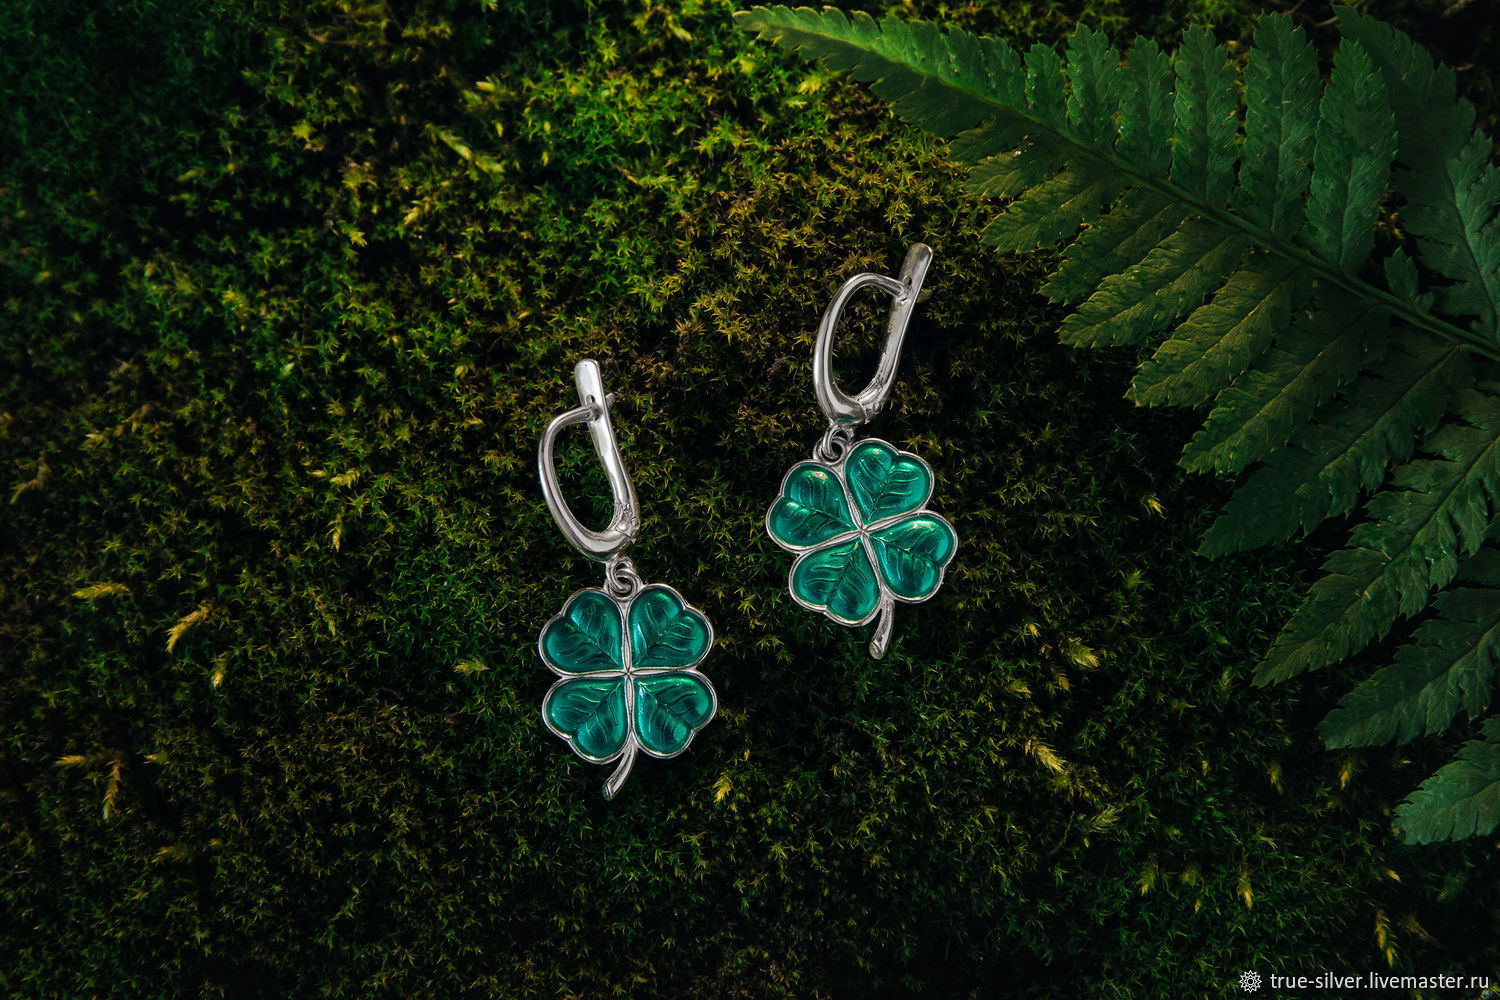 Earrings and pendant four-Leaf clover 925 silver with enamel, Jewelry Sets, Moscow,  Фото №1